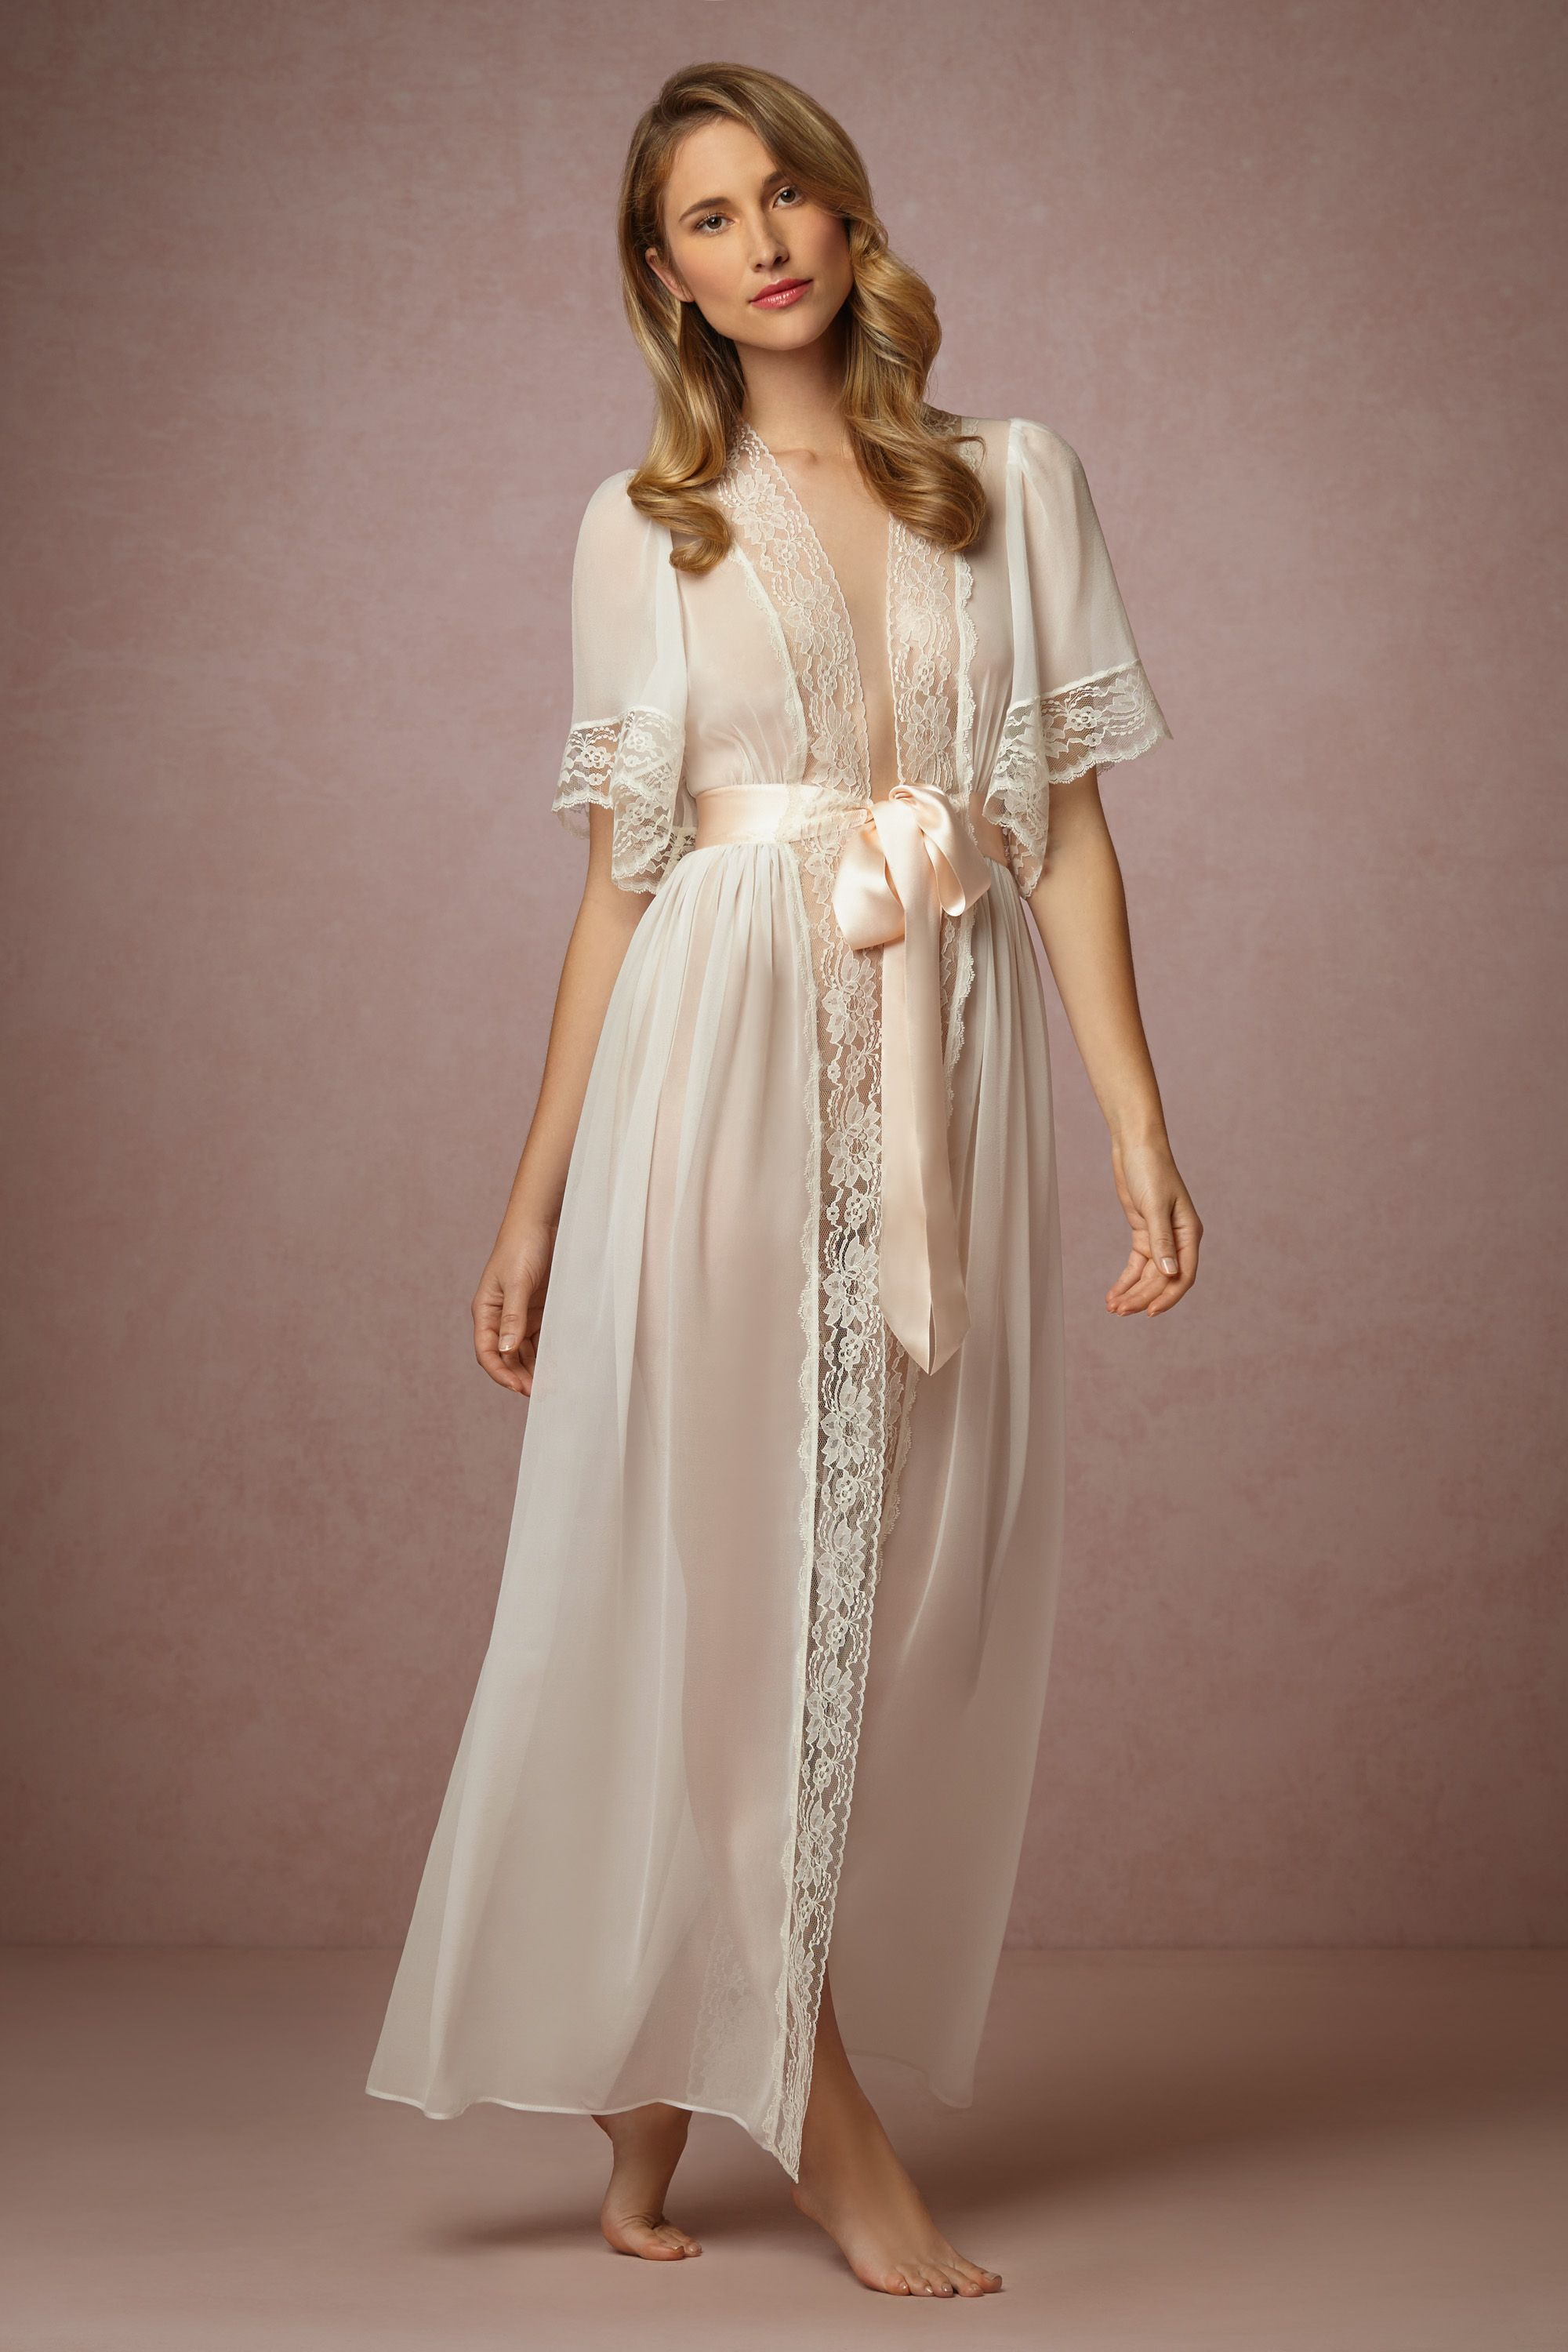 d4dbcd7c4 BHLDN Starlet Robe in Shoes   Accessories Lingerie at BHLDN ...